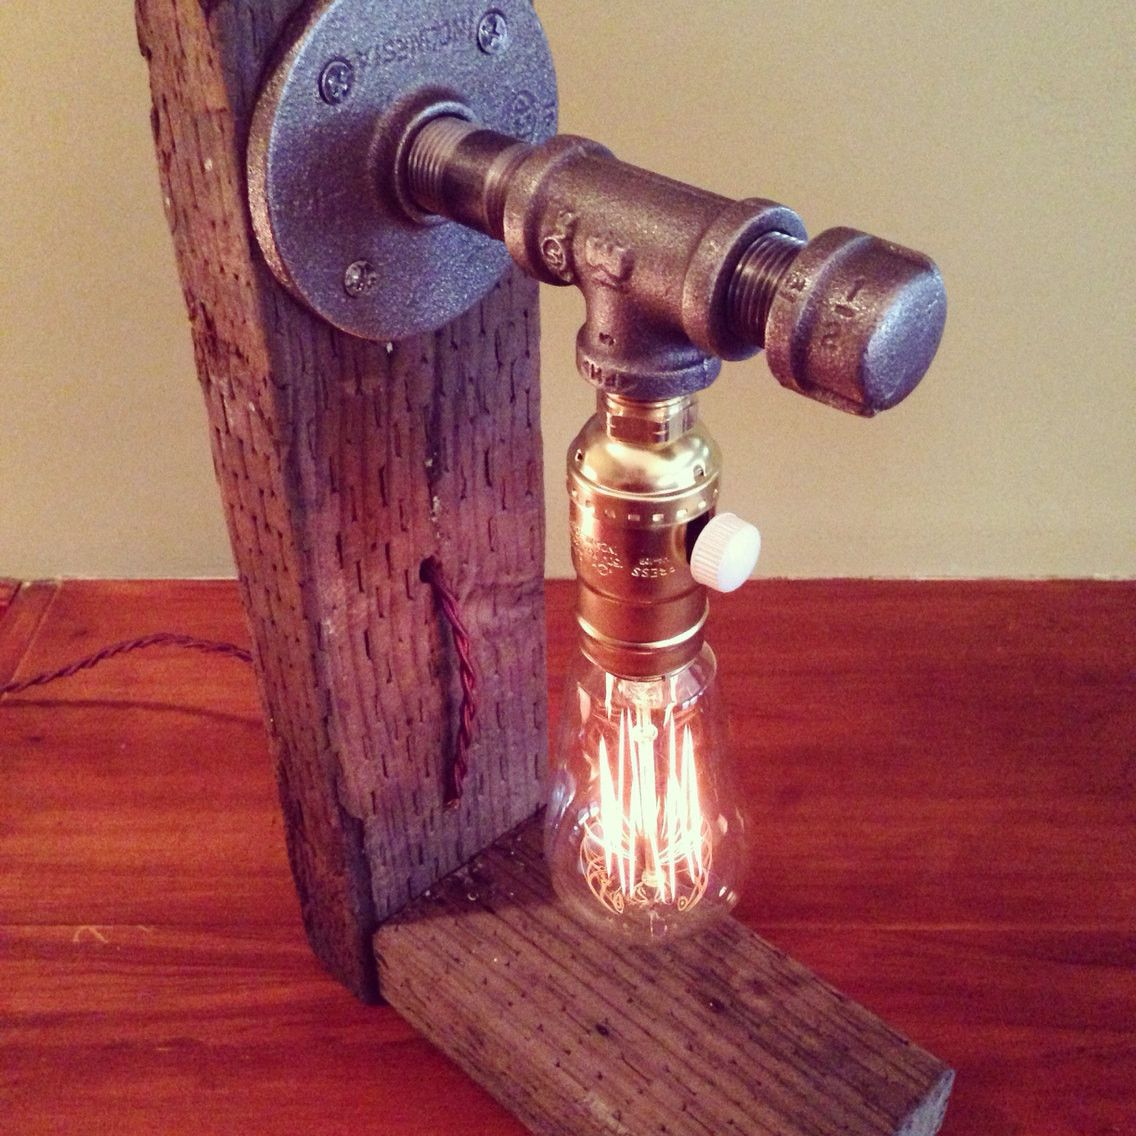 Industrial Lighting Lighting Rustic Light Steampunk: Classic Industrial Steampunk Table Lamp With Dimmer In